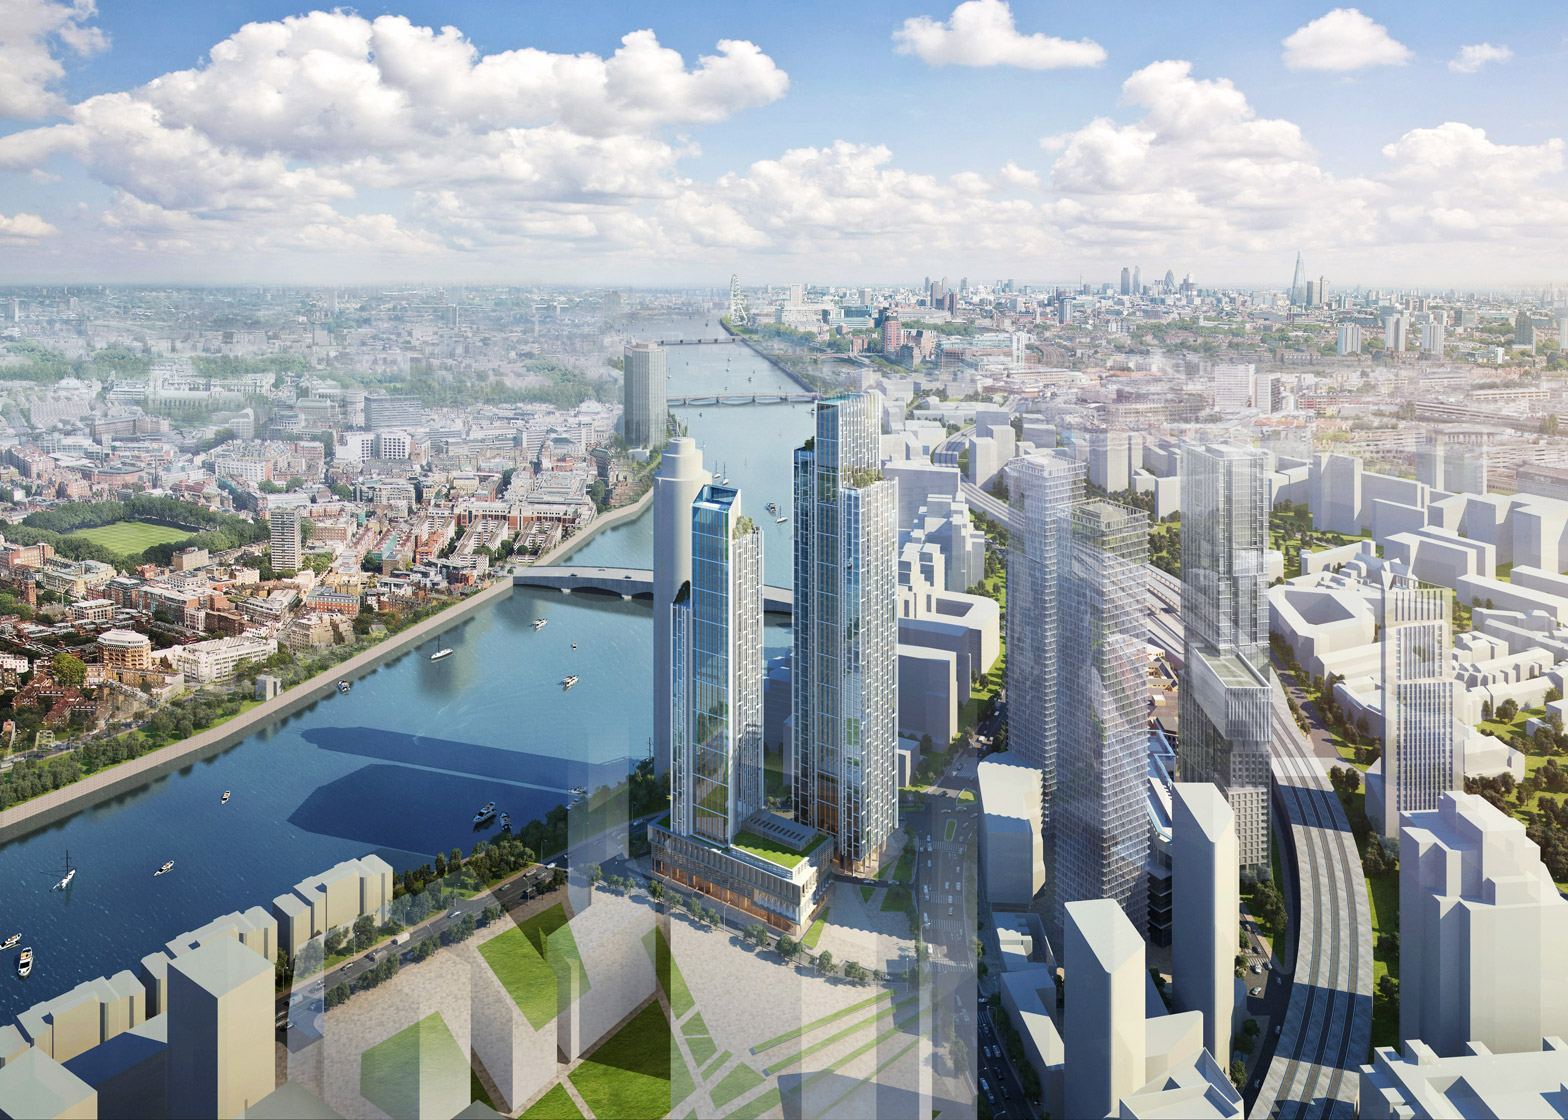 London Wanda One, design control by Wanda Commercial Planning and Research Institute. Artist impression of One Nine Elms, image courtesy KPF